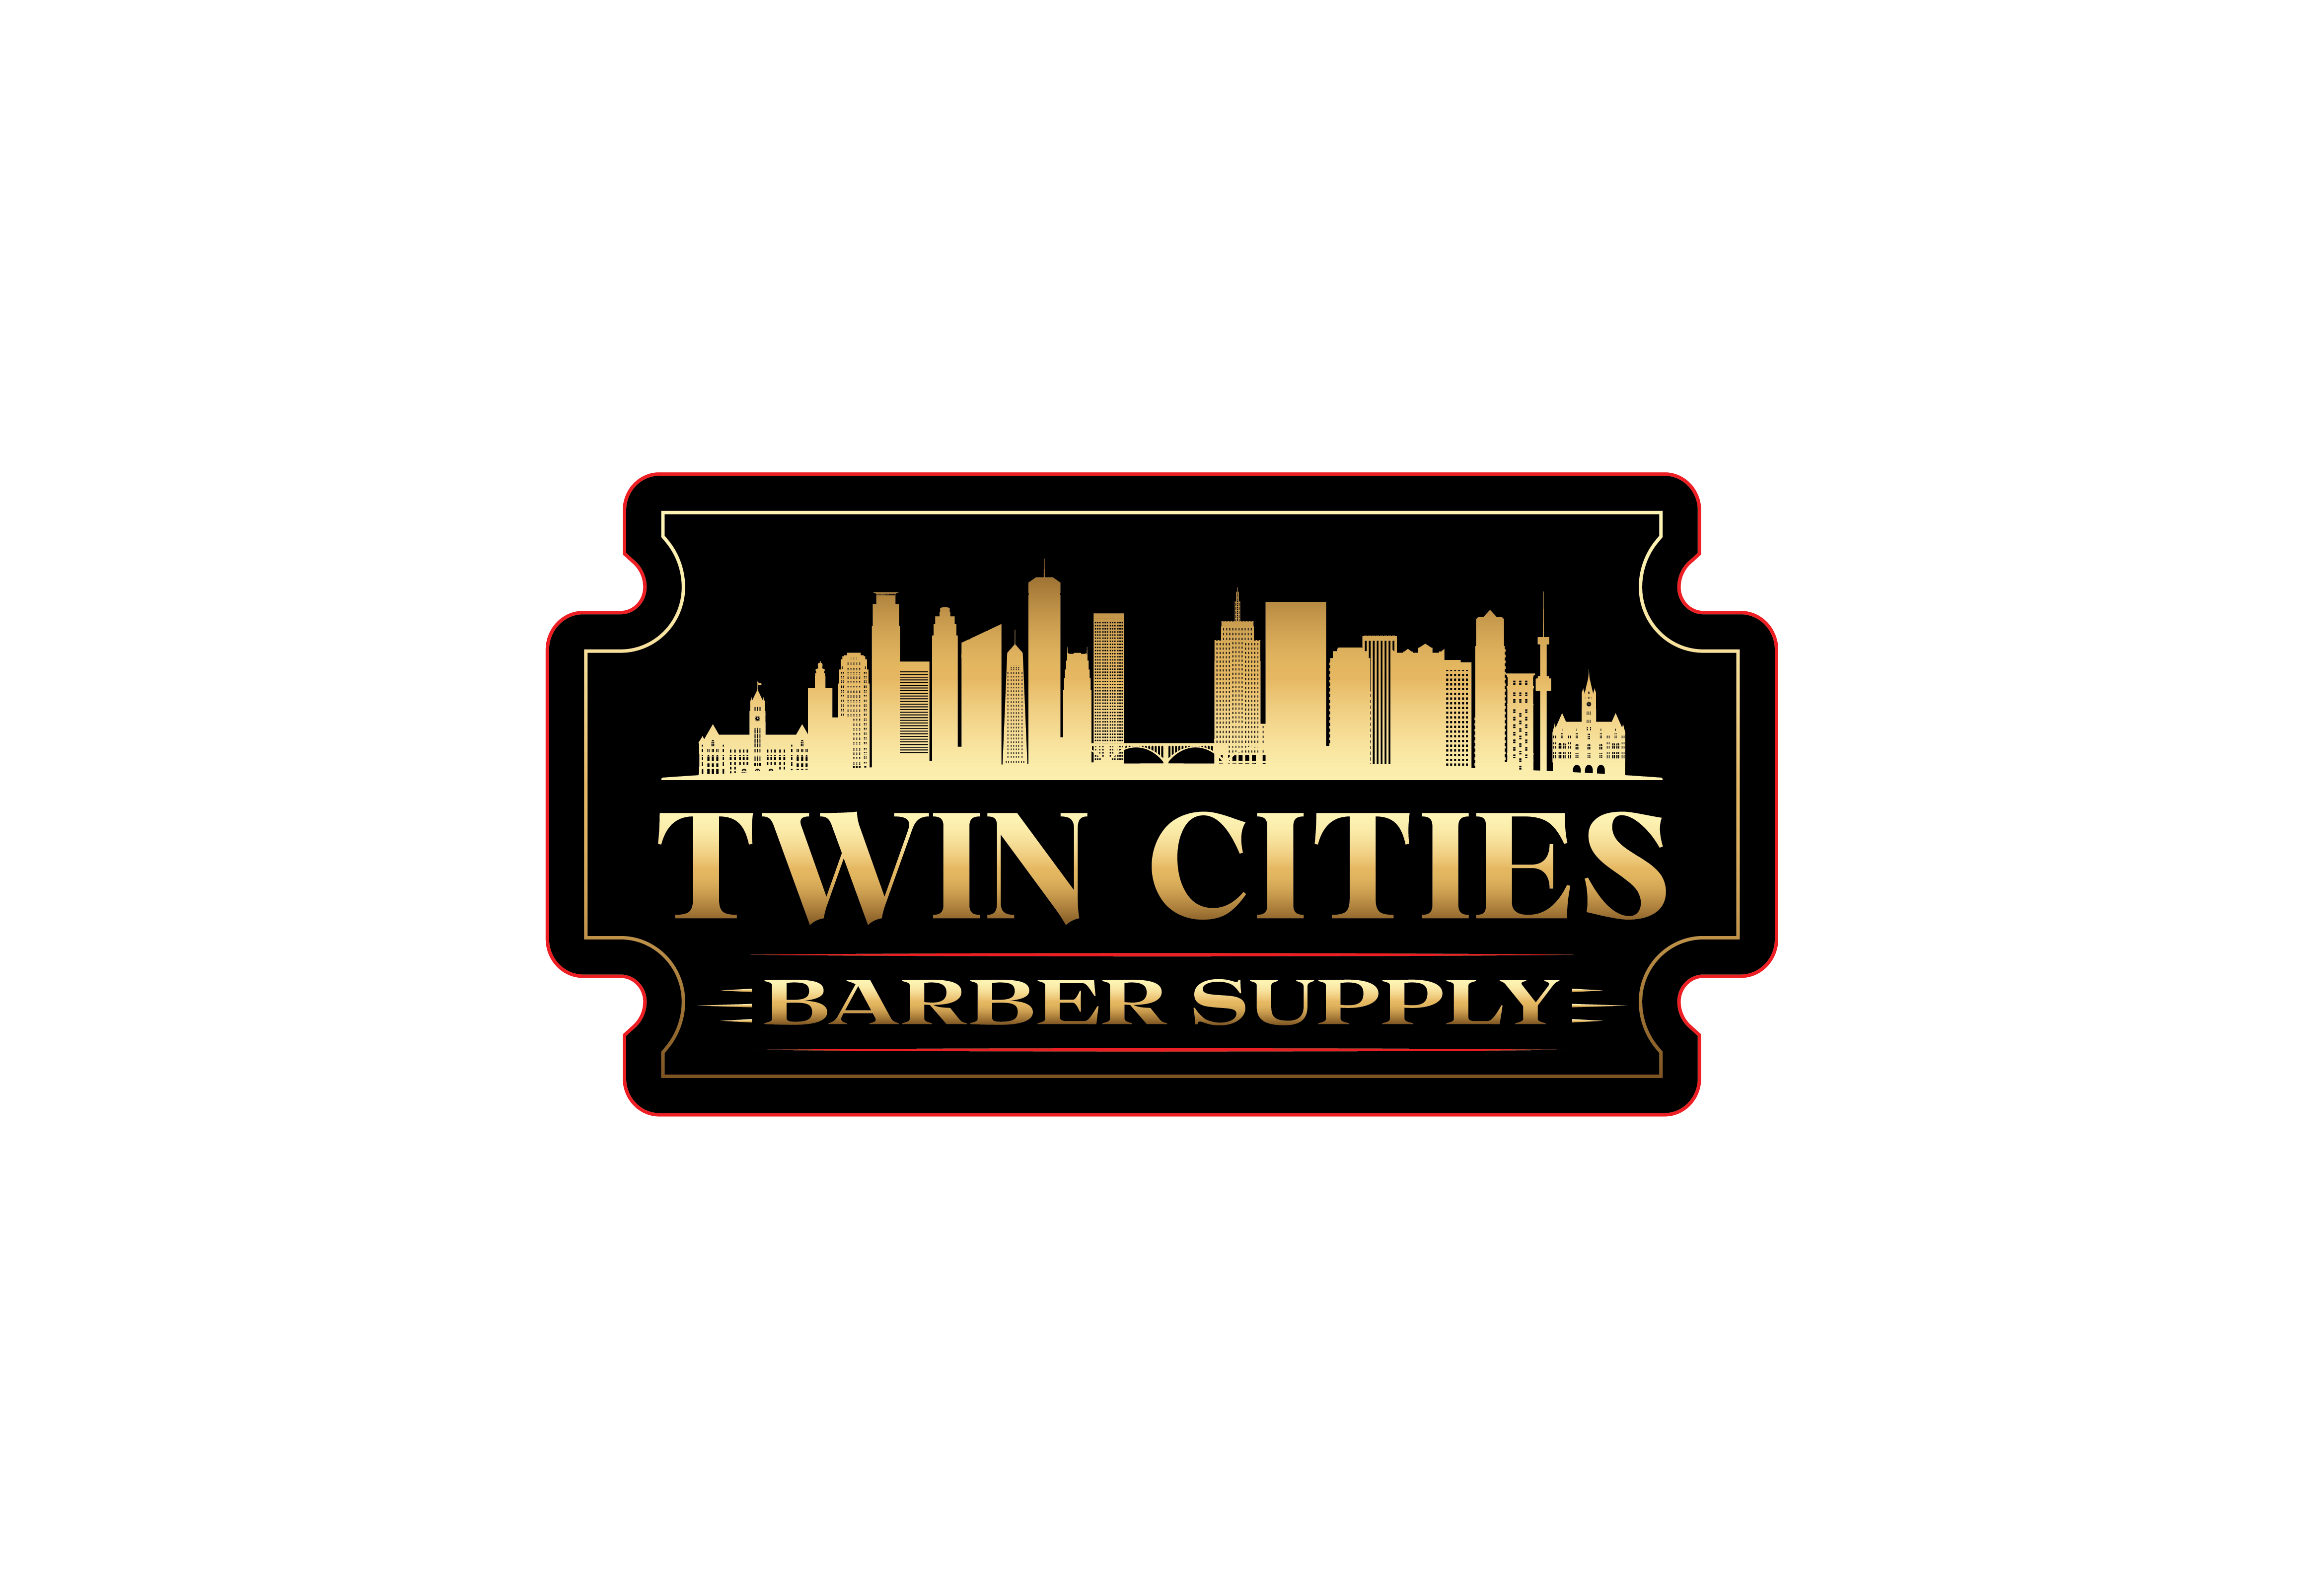 Twin Cities Barber Supply